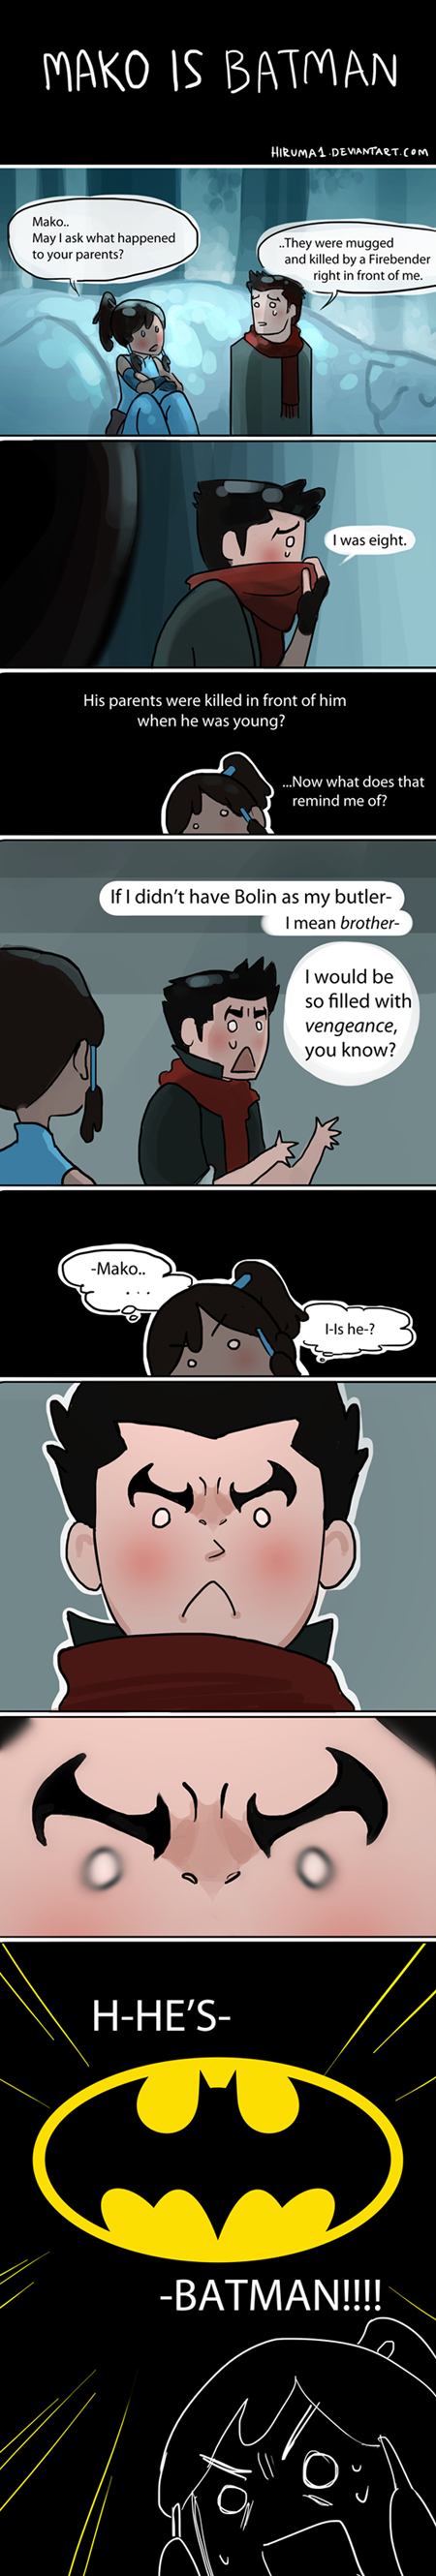 Mako is Batman by lydia-the-hobo